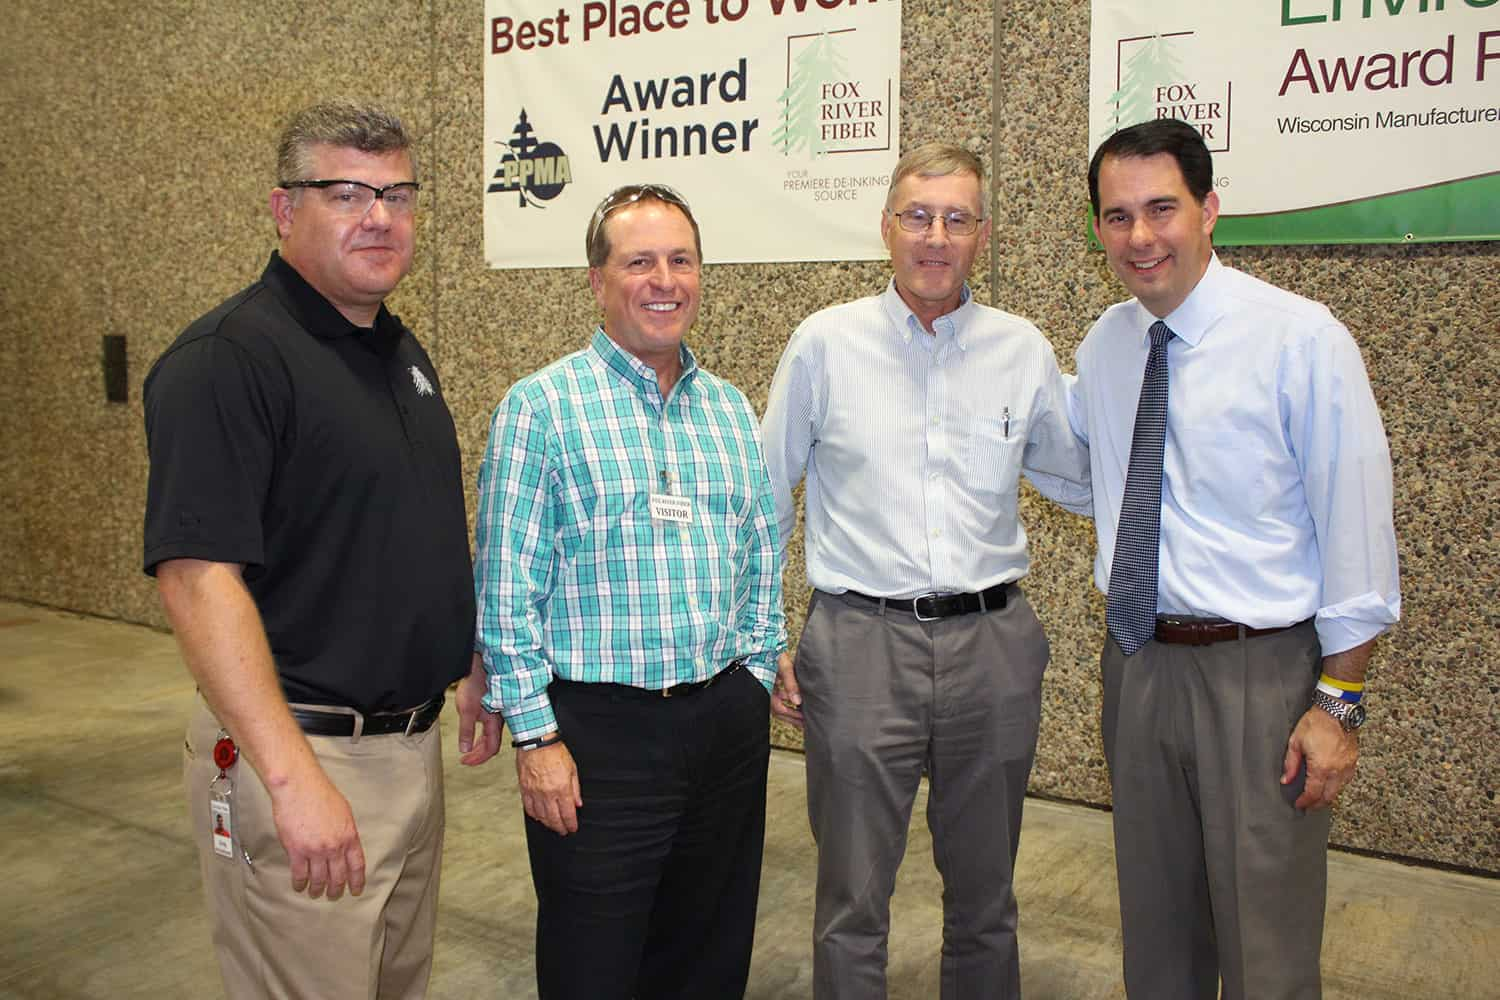 Governor Compliments De Pere Company's Focus on Environmental Sustainability and Job Growth During Campaign Stop